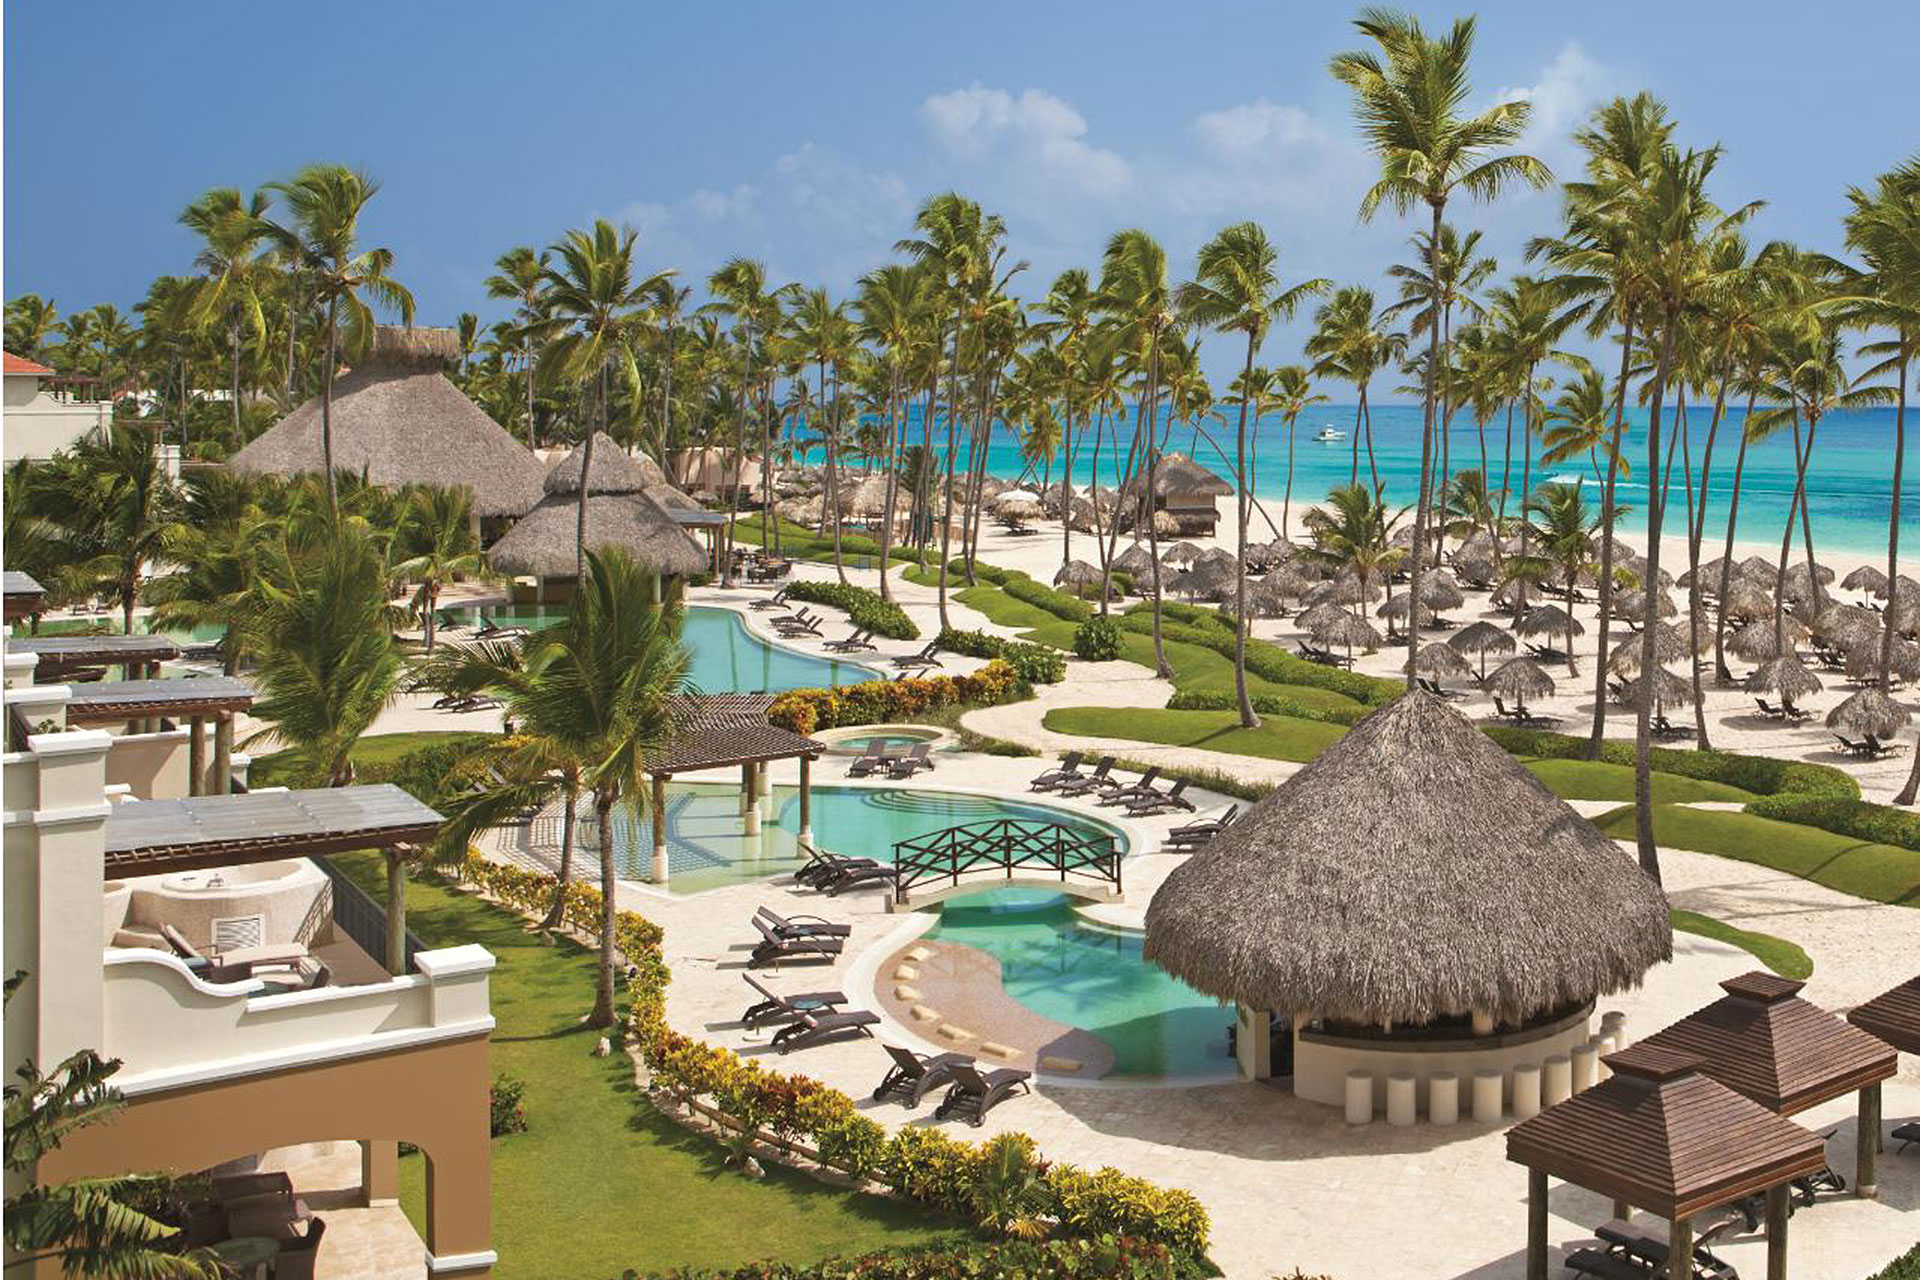 Now Larimar Punta Cana in Punta Cana, Dominican Republic